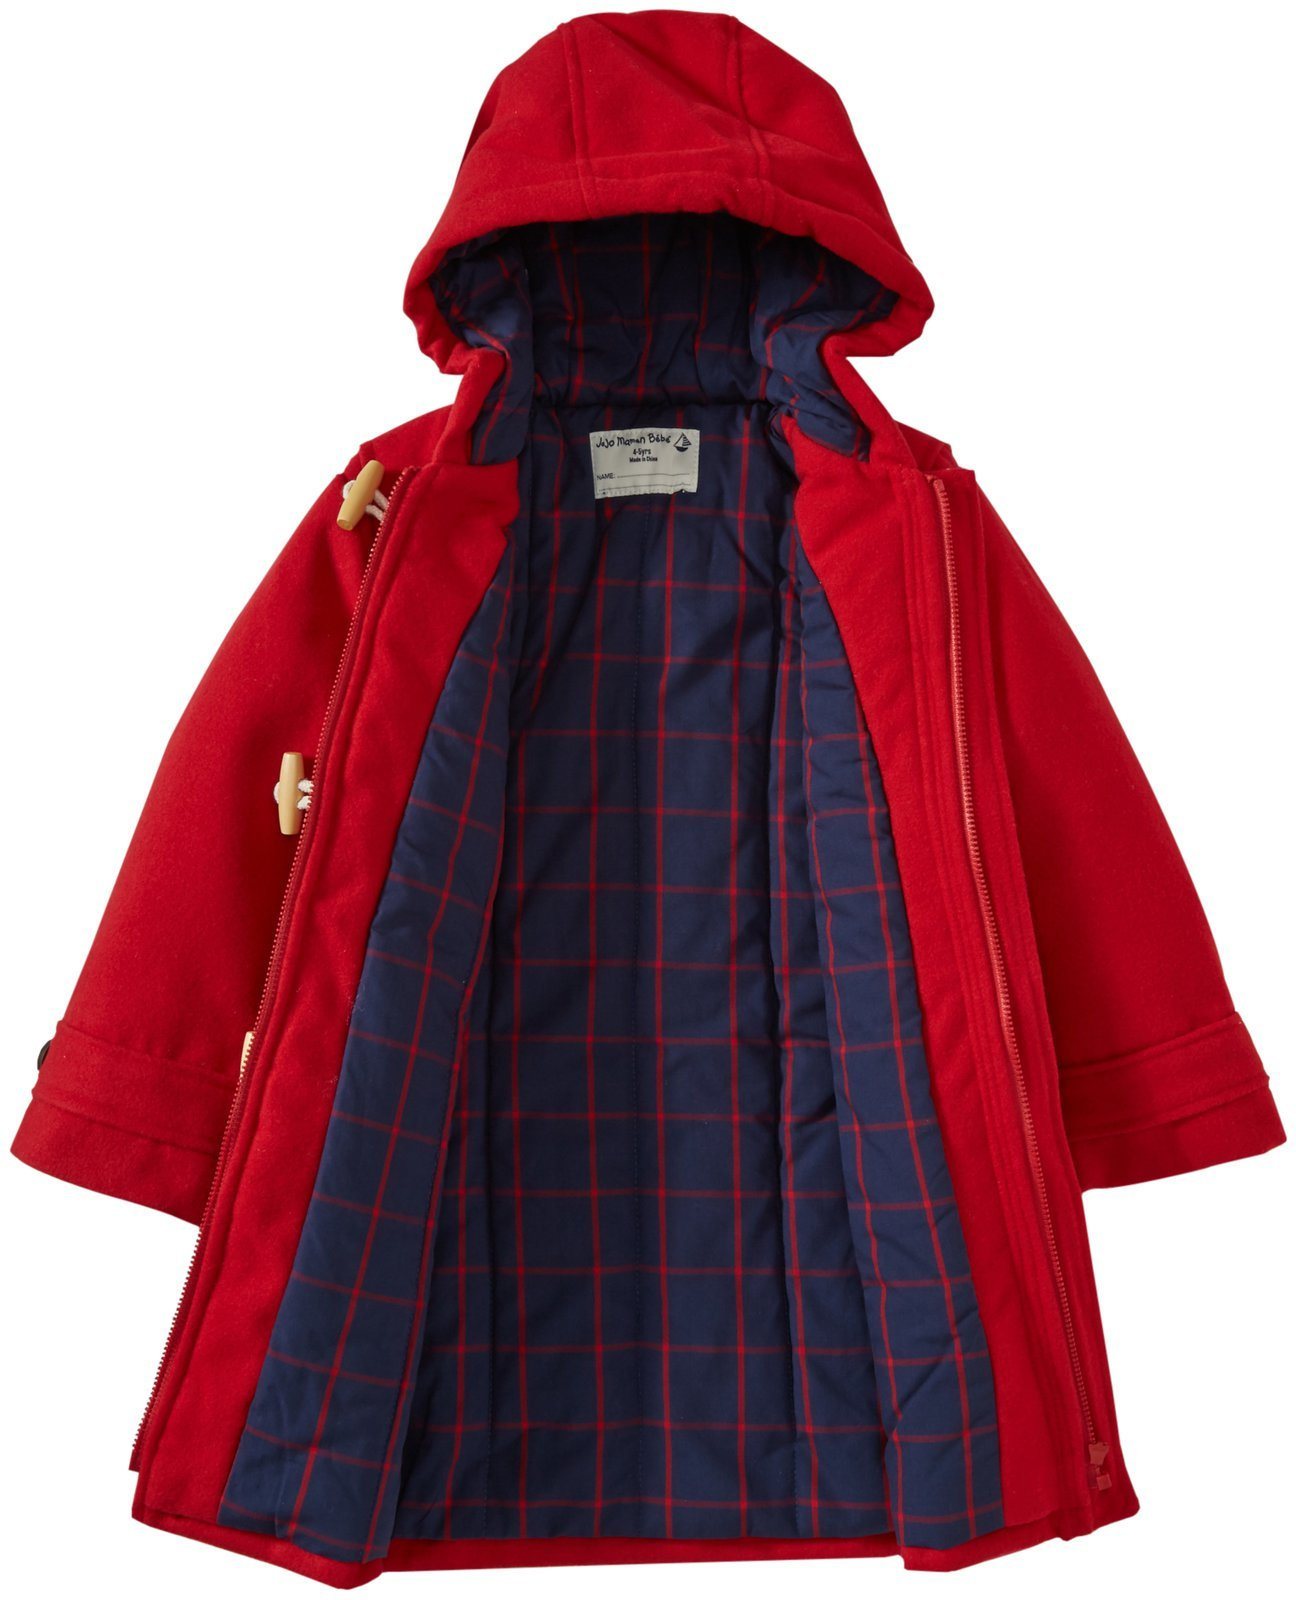 2dd73ff26f43 JoJo Maman Bebe Toddler Girls Duffle Coat - Red - Size  2-3 Years ...